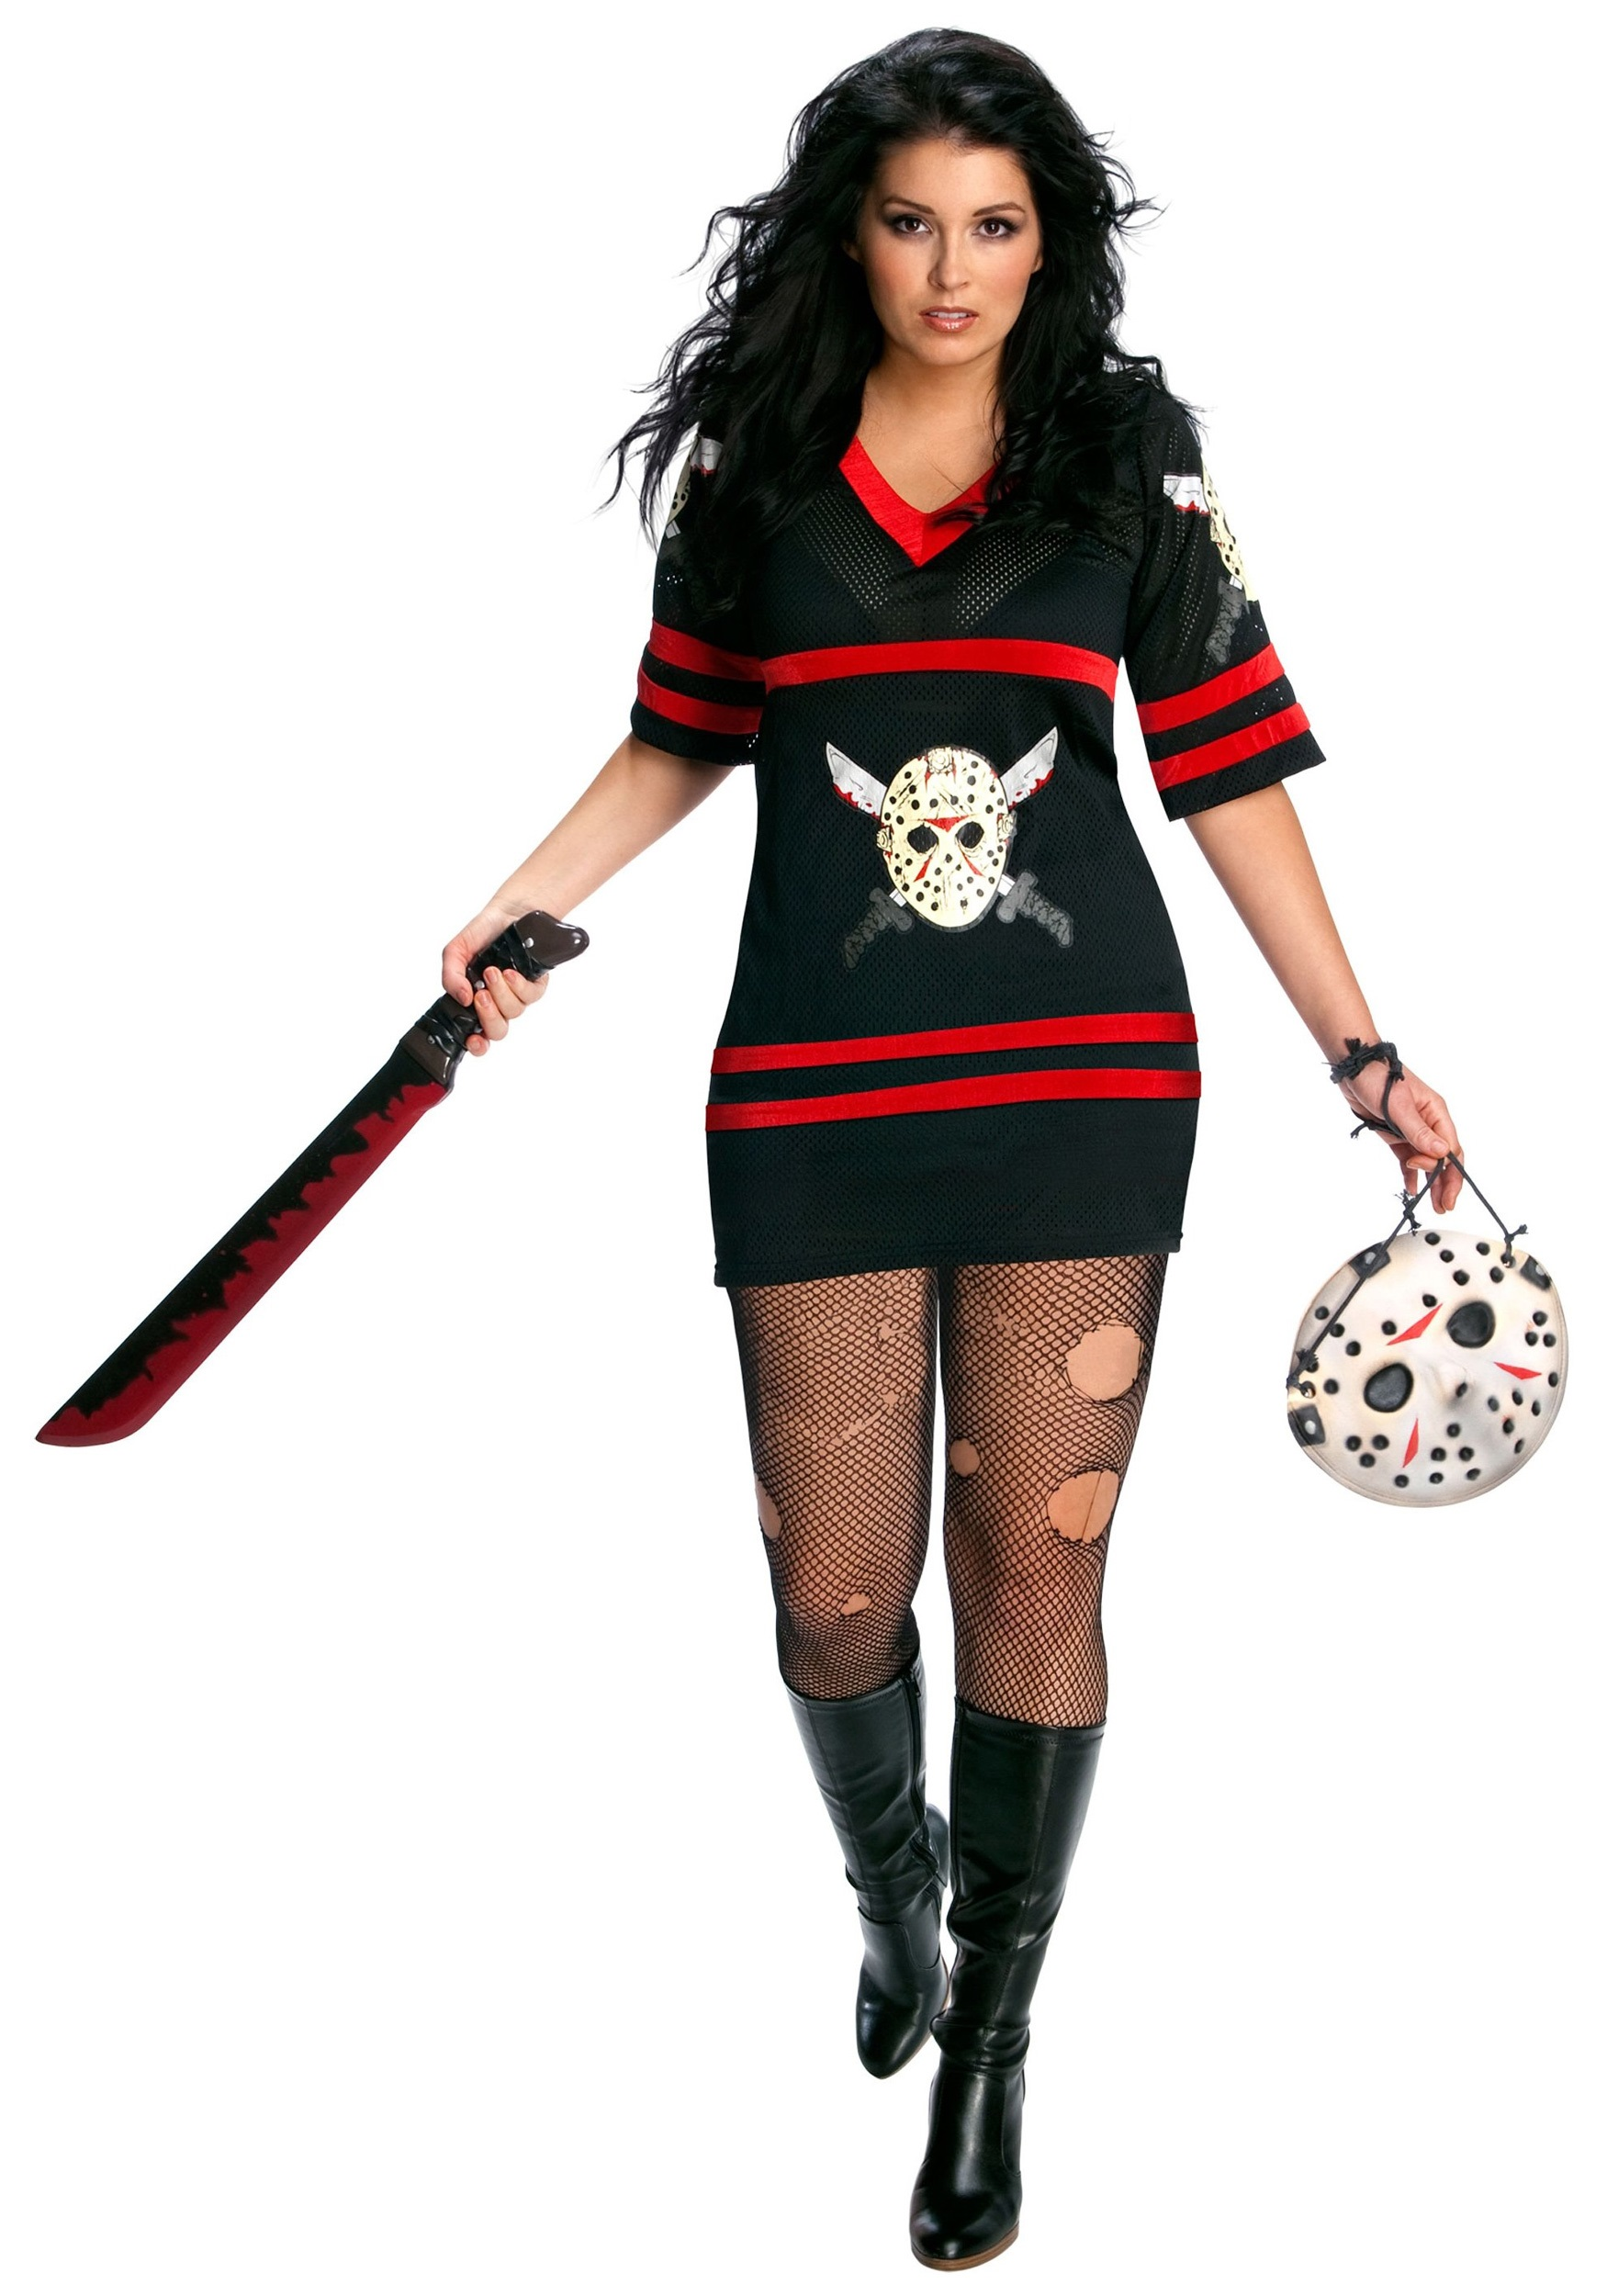 Womenu0027s Sexy Plus Size Jason Costume  sc 1 st  Fun.com & Sexy Plus Size Jason Costume for Women